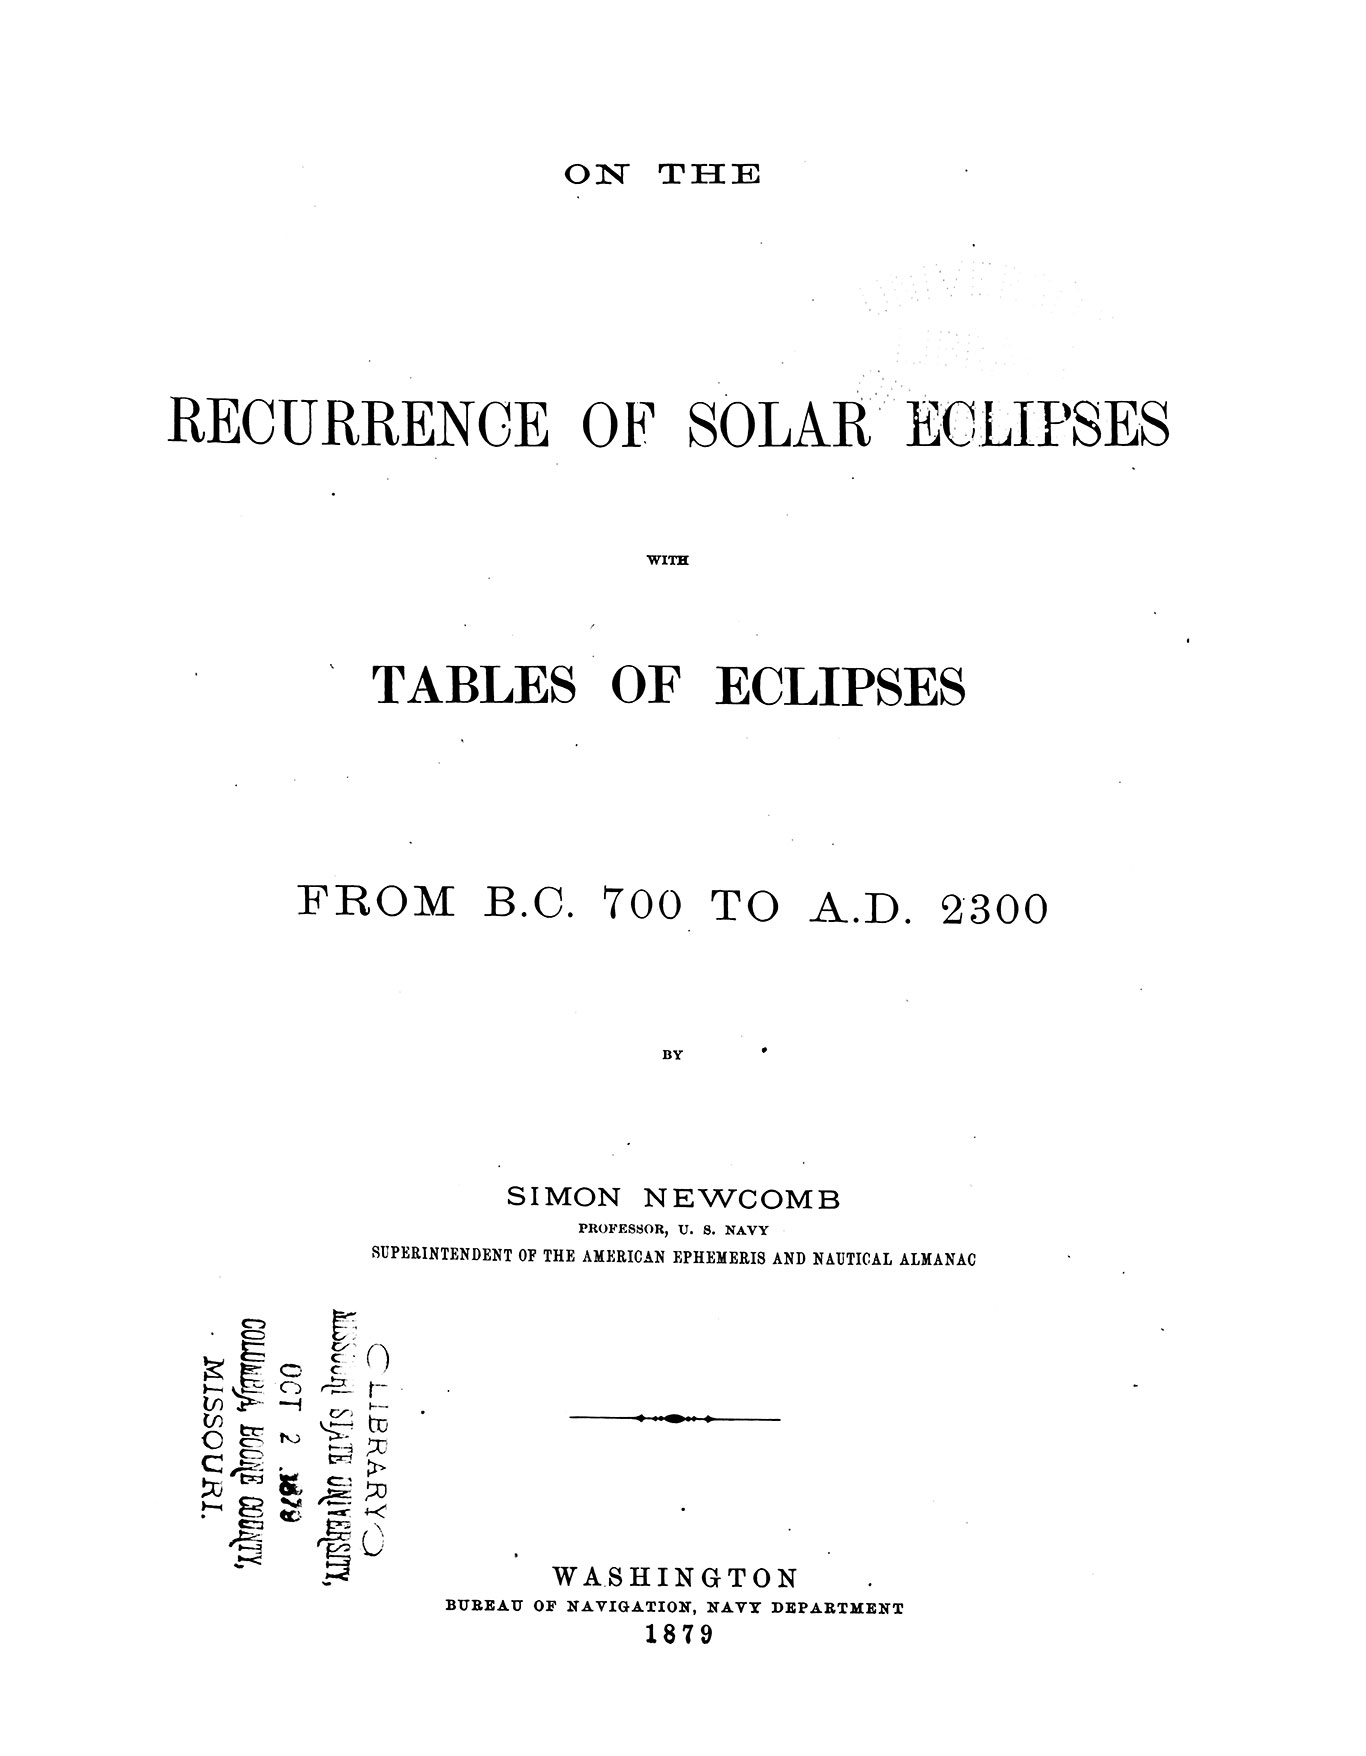 On the recurrence of solar eclipses with tables of eclipses from B.C. 700 to A.D. 2300